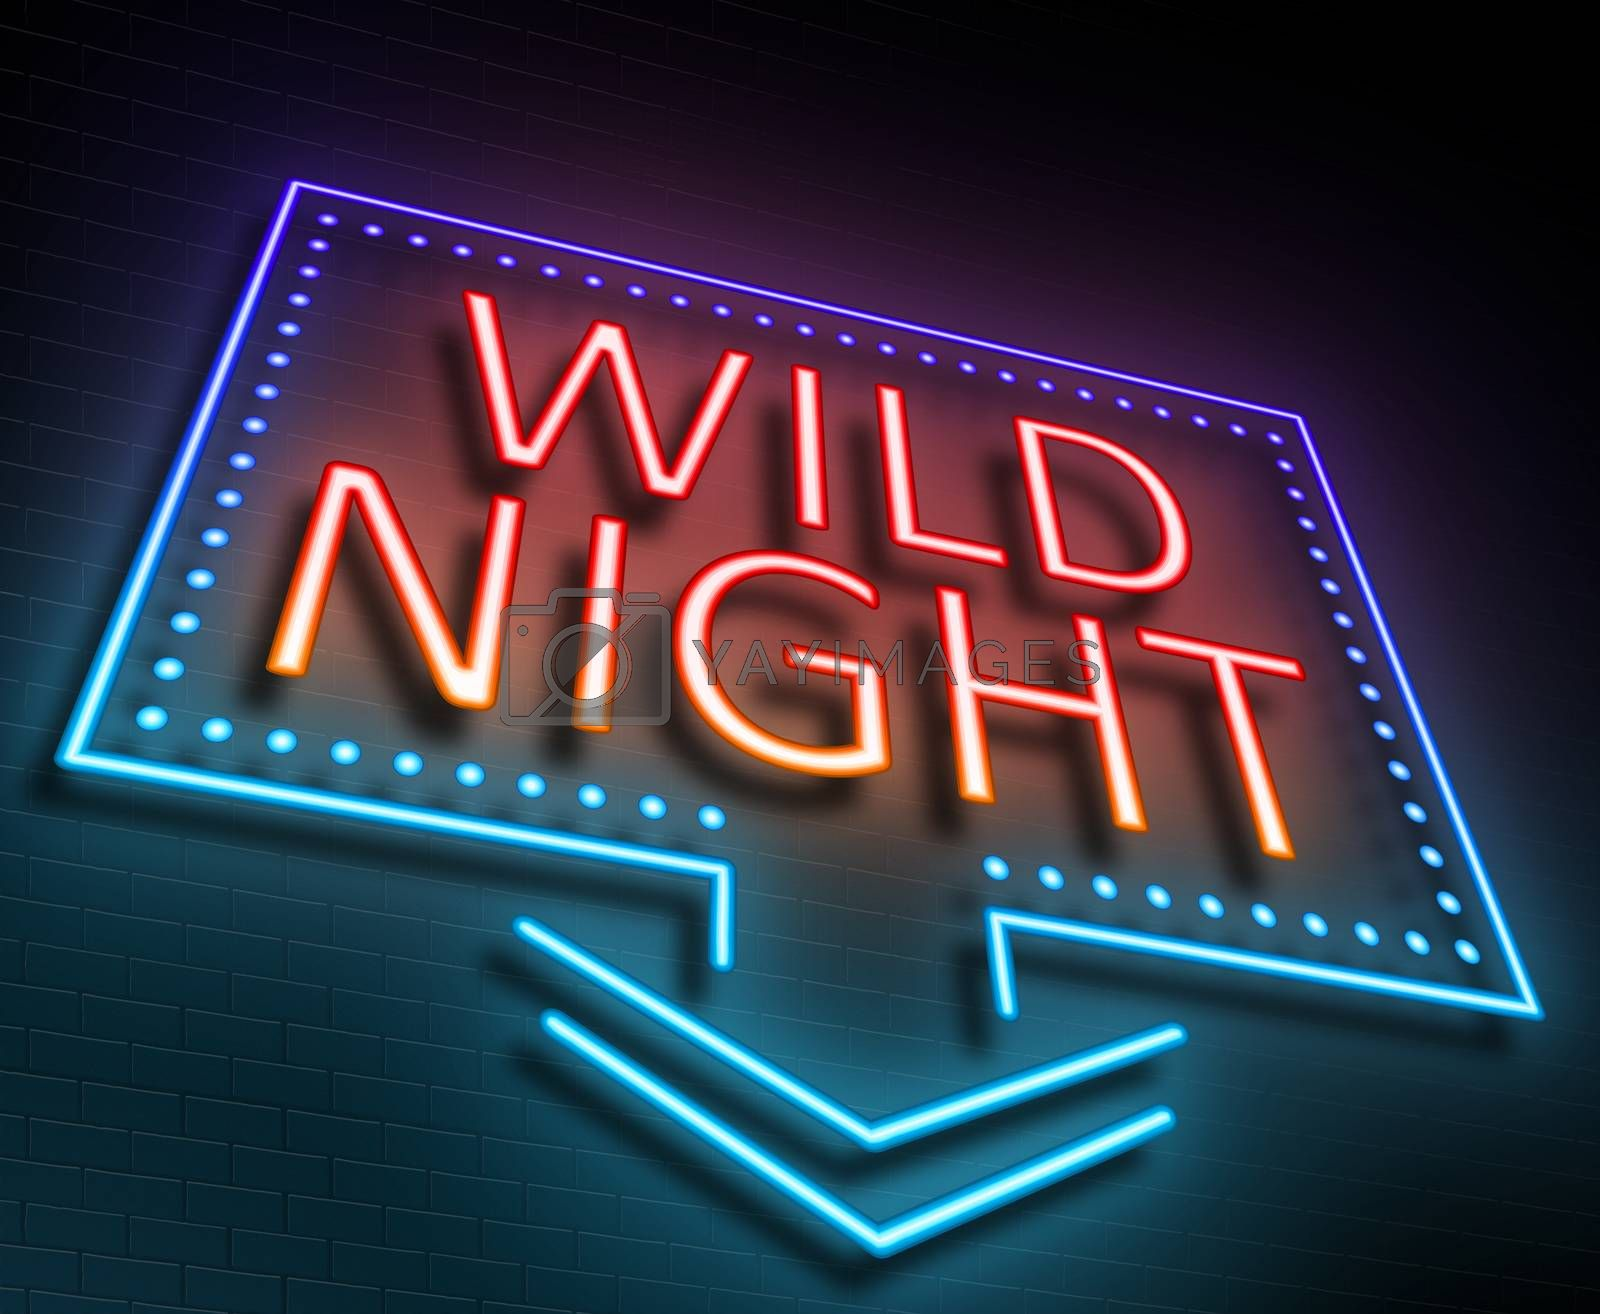 Illustration depicting an illuminated neon sign with a wild night concept.